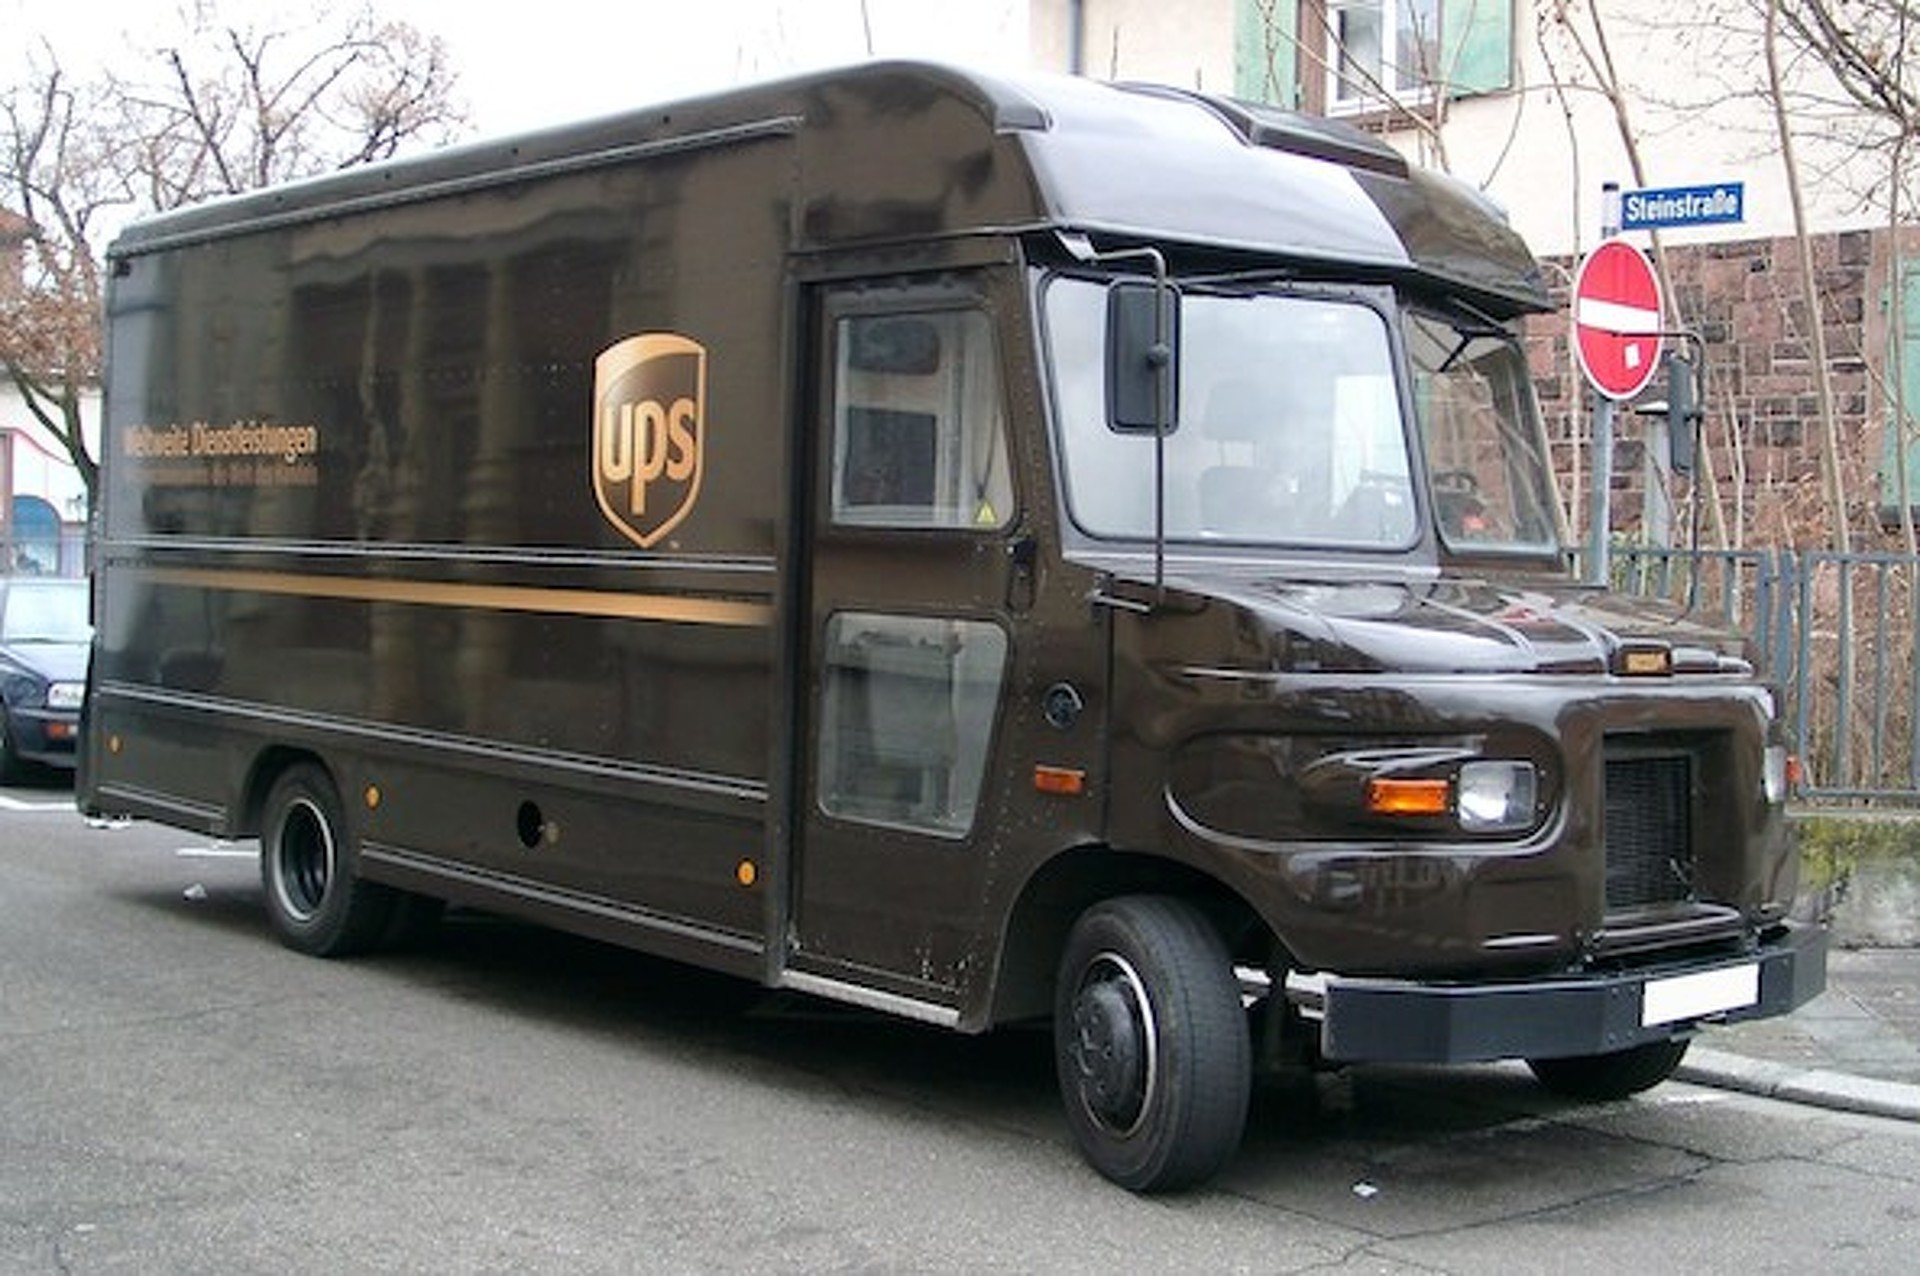 Study: Men Who Drive Minivans Less Attractive than UPS Guy